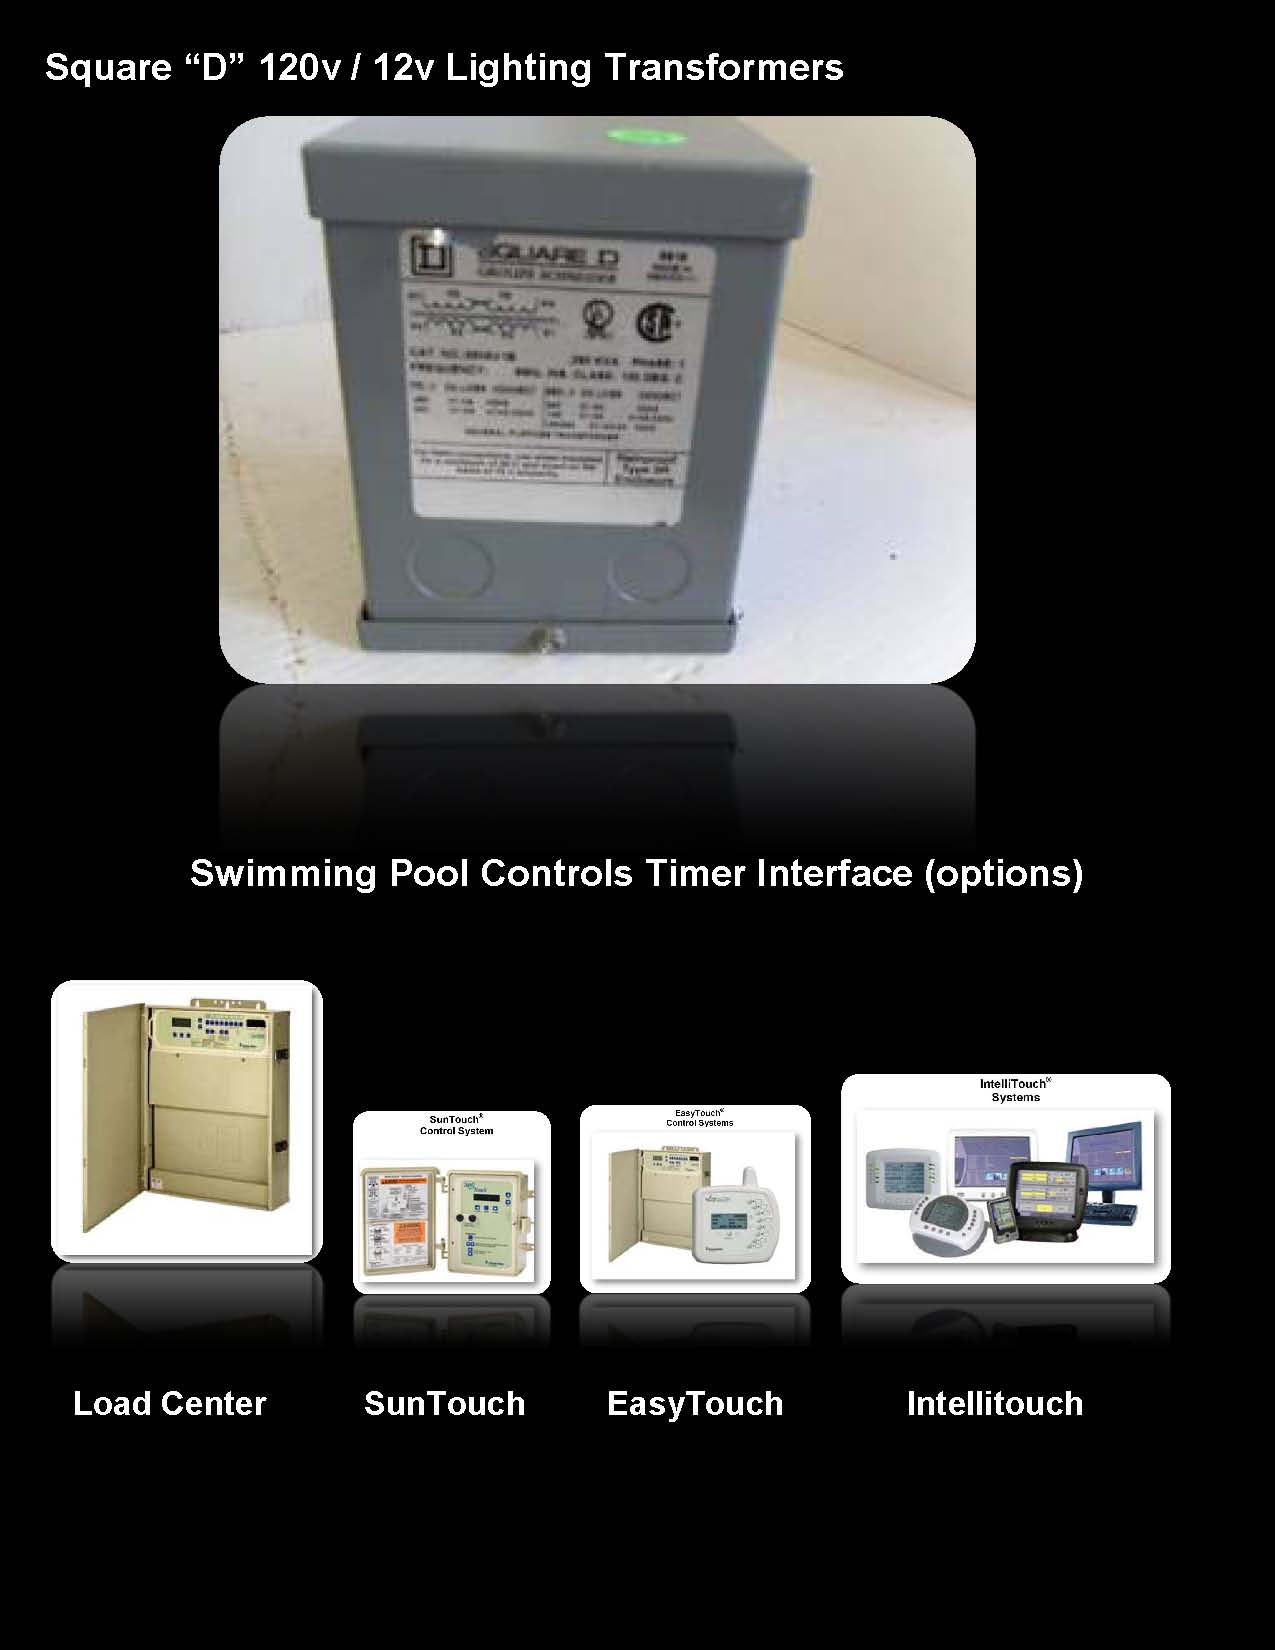 Transformers and Control Timers